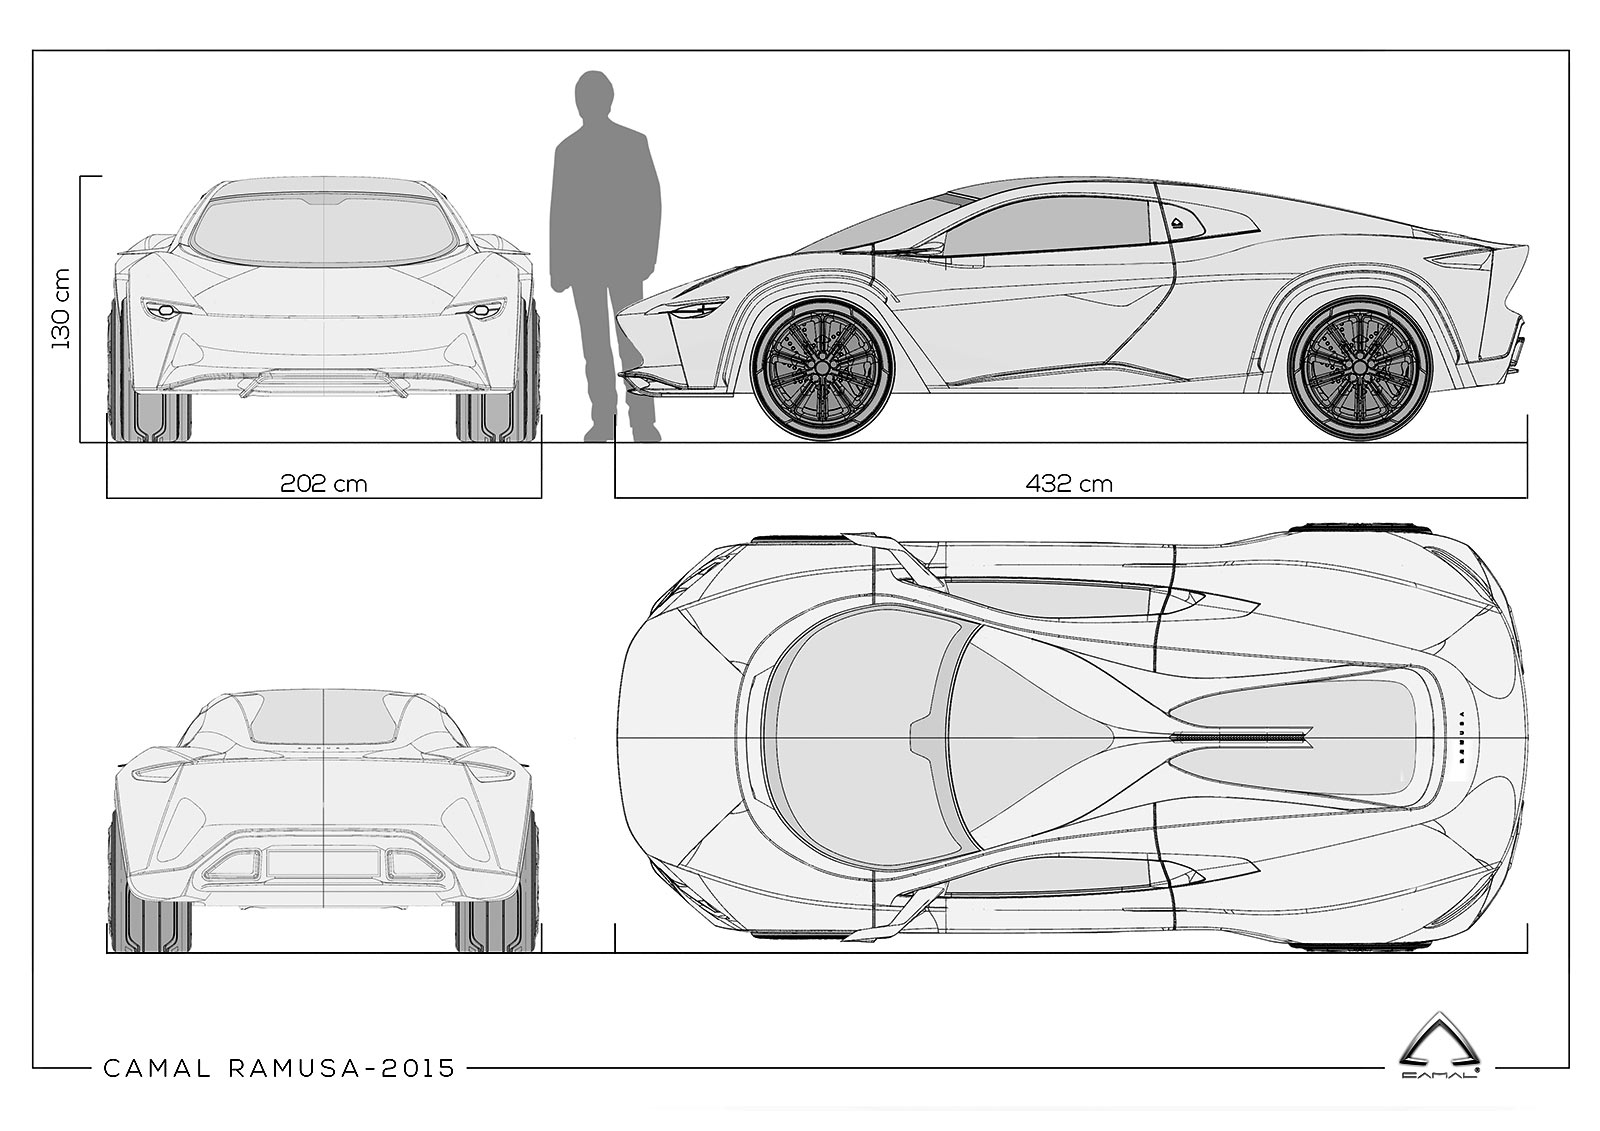 Camal ramusa concept package blueprints car body design camal ramusa concept package blueprints malvernweather Image collections